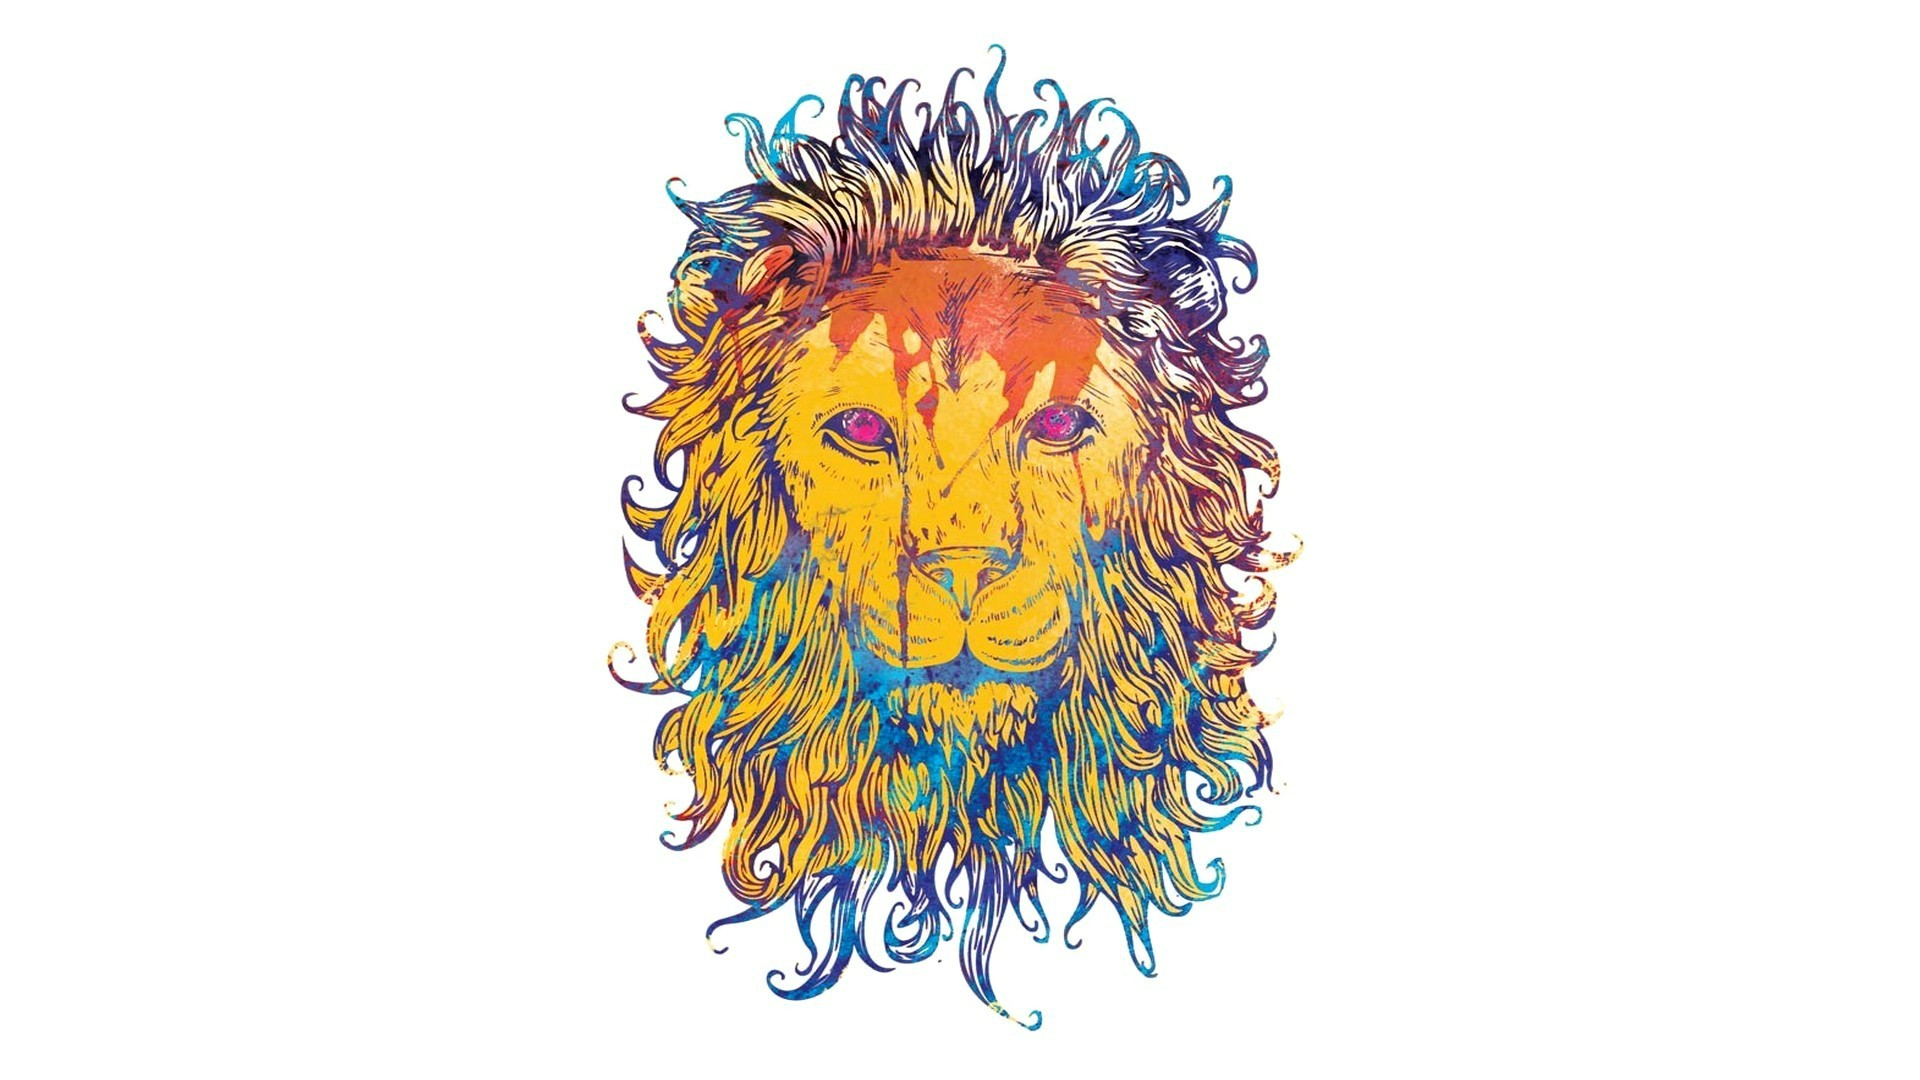 lion-drawing-colorful-king-king-of-beasts-1920x1080-wallpaper-wp3408155